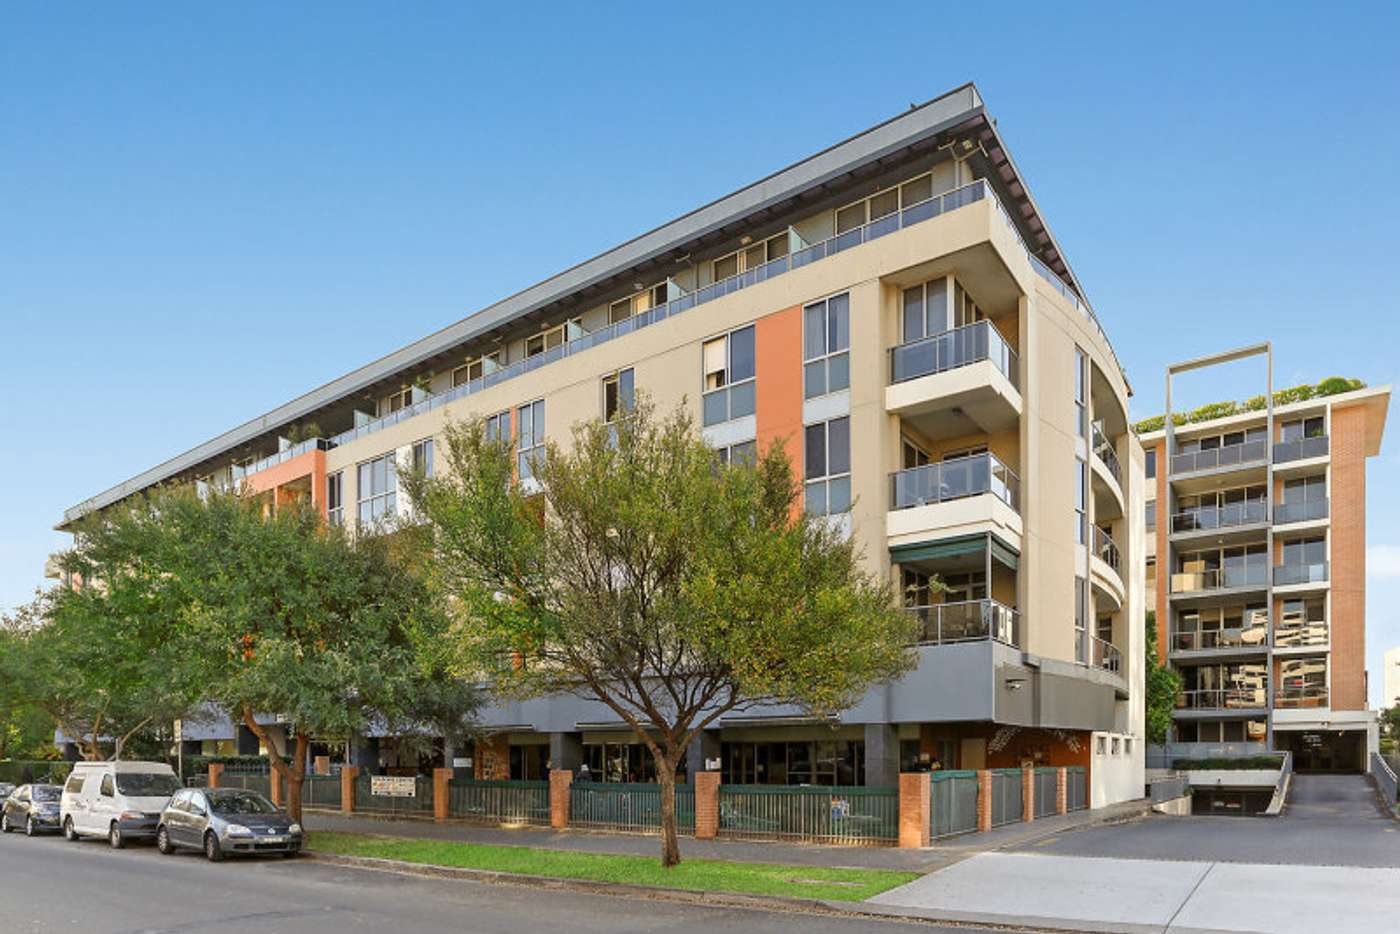 Main view of Homely apartment listing, 75/18-26 Church Avenue, Mascot NSW 2020